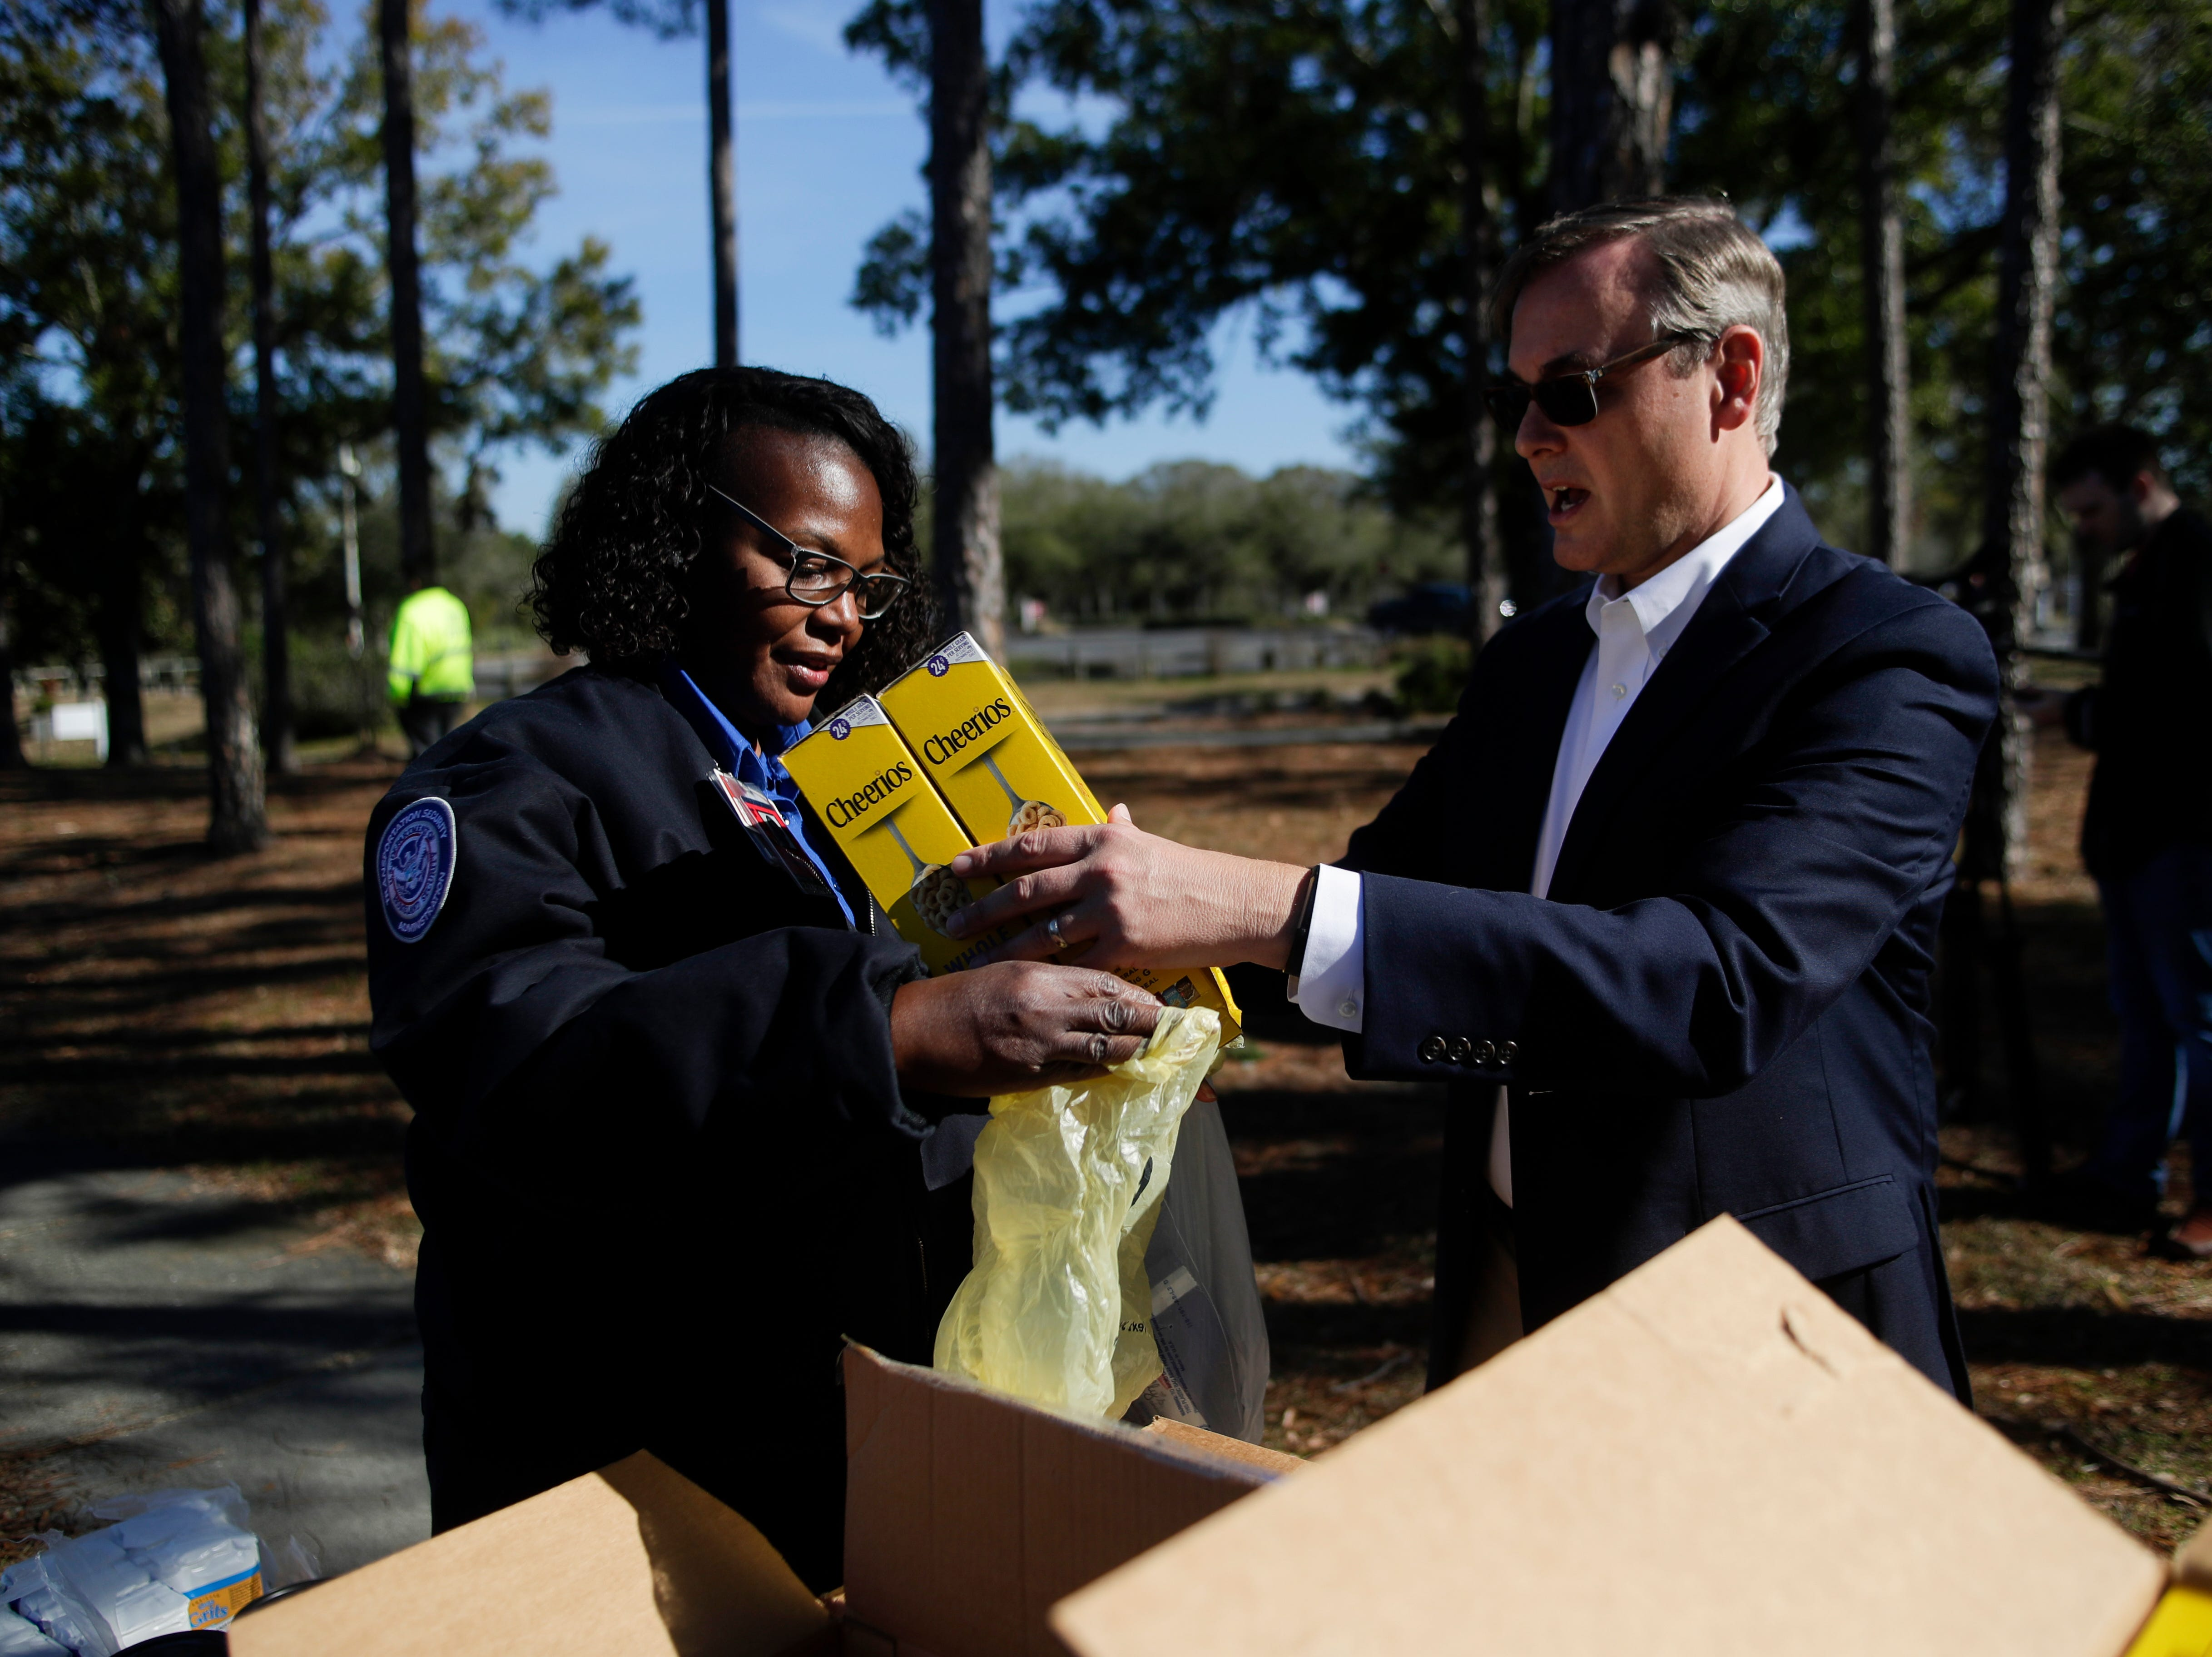 Second Harvest of the Big Bend CEO Rick Minor helps Transportation Security Administration employee Cartisha Dickson pack up two boxes of Cheerios into a bag as Second Harvest provides food to the 45 Transportation Security Administration  workers at the Tallahassee International Airport Thursday, Jan. 17, 2019.